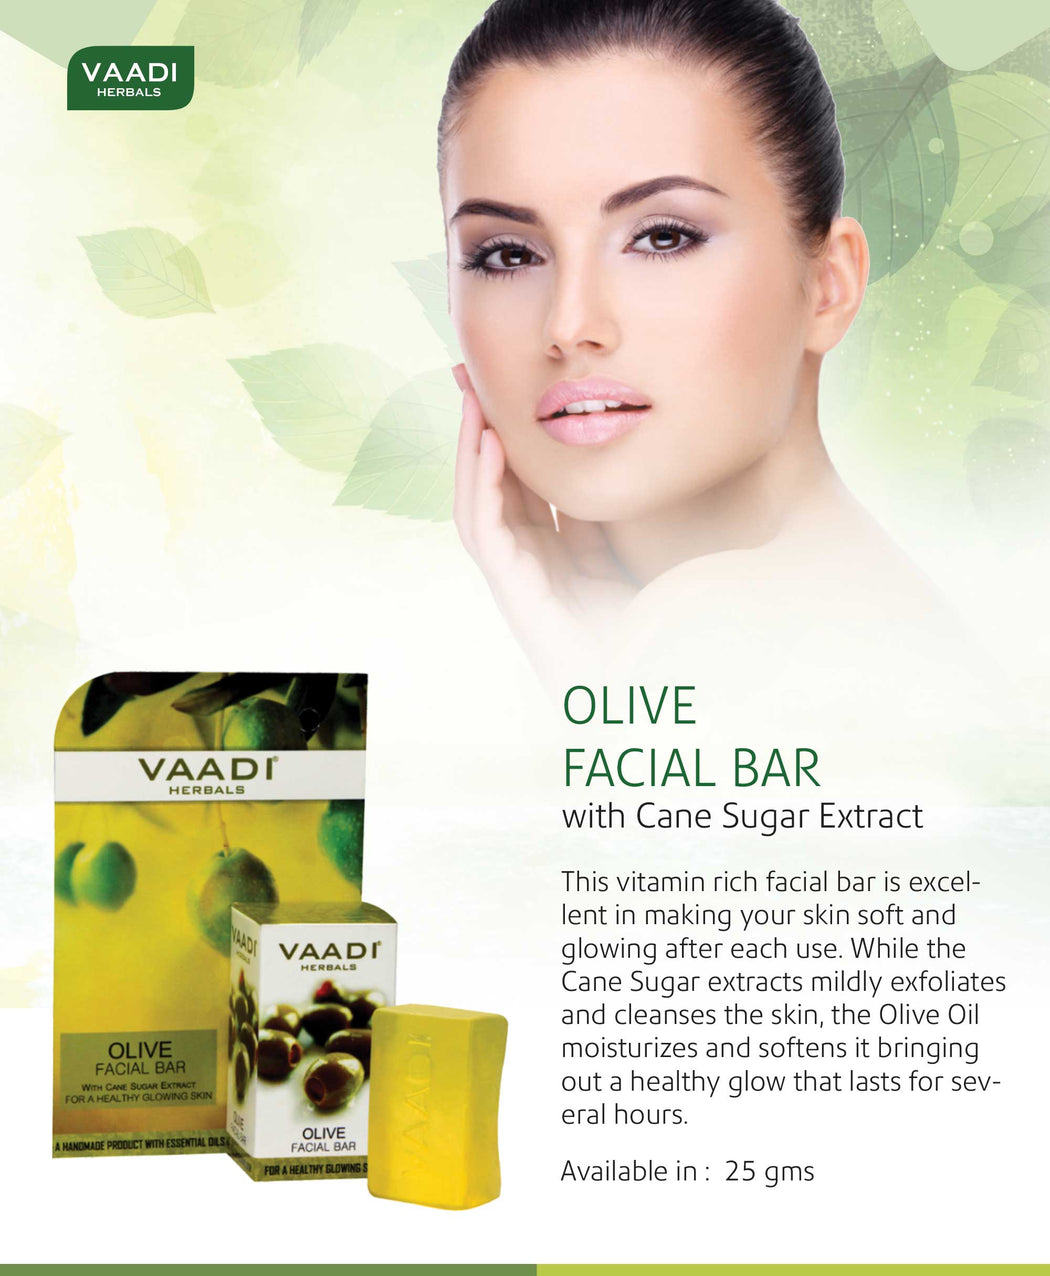 Organic Olive Facial Bar with Cane Sugar Extract - Exfoliates & Clean the Skin (6 x 25 gms/0.9 oz)